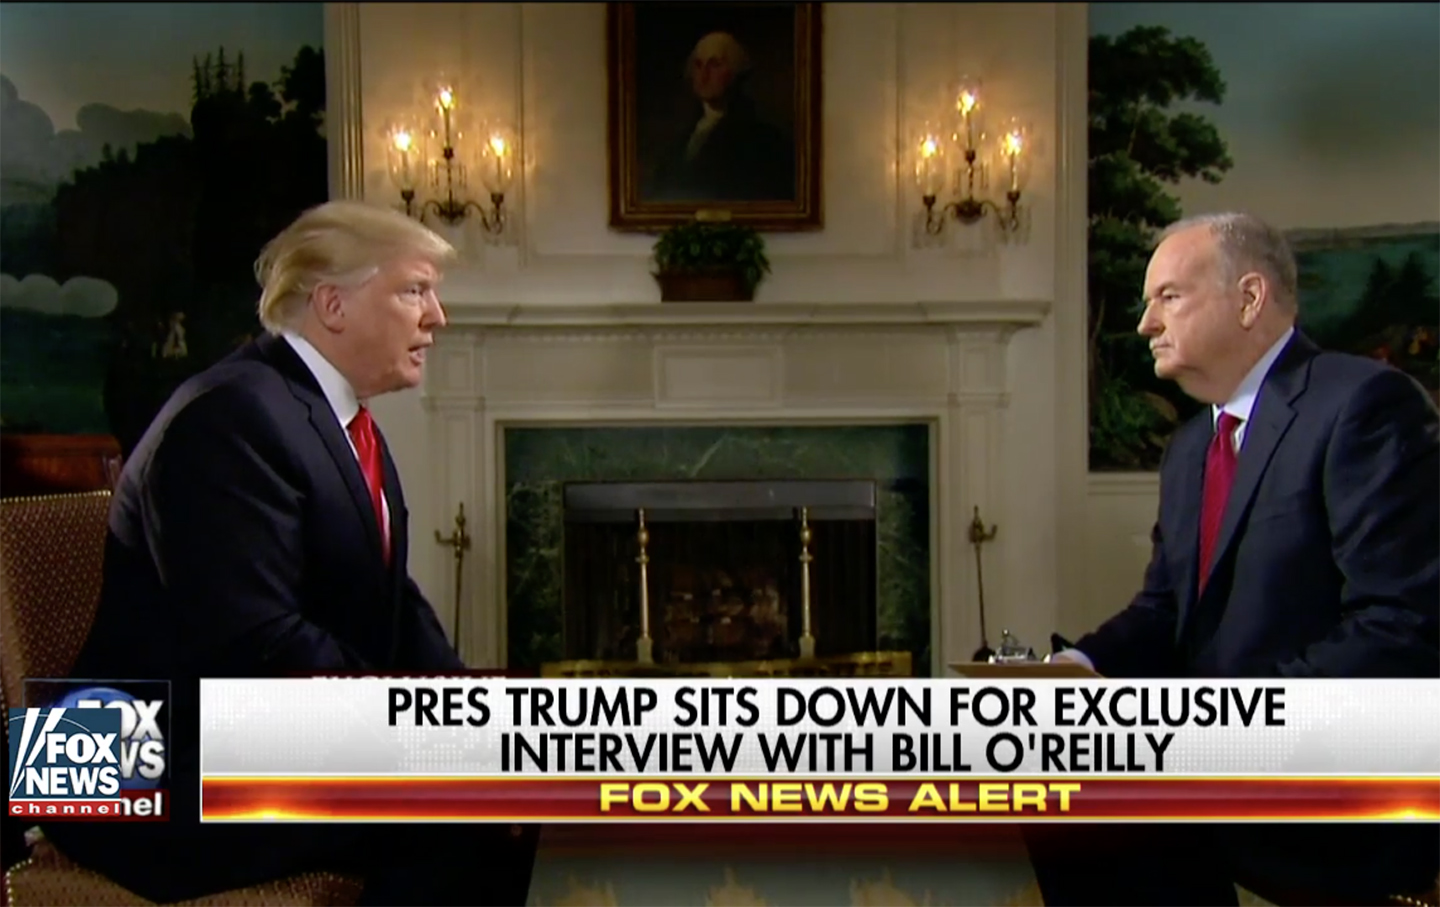 Pre-Superbowl Trump interview with O'Reilly